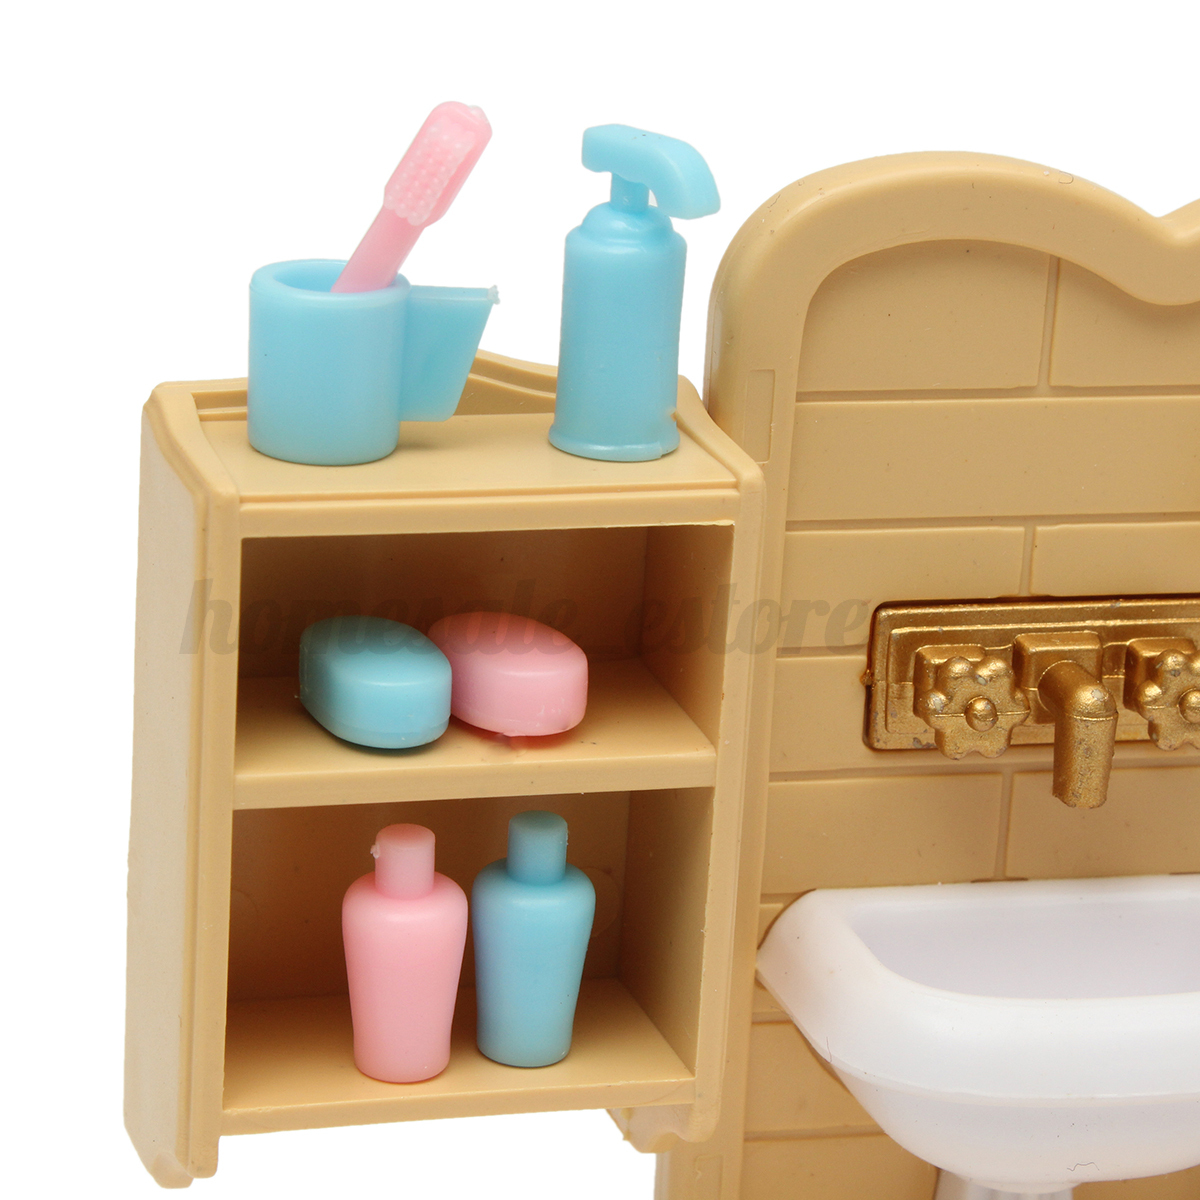 Plastic Bathtub Toilet Miniature Doll House Furniture Toy Set Bathroom Decor Ebay